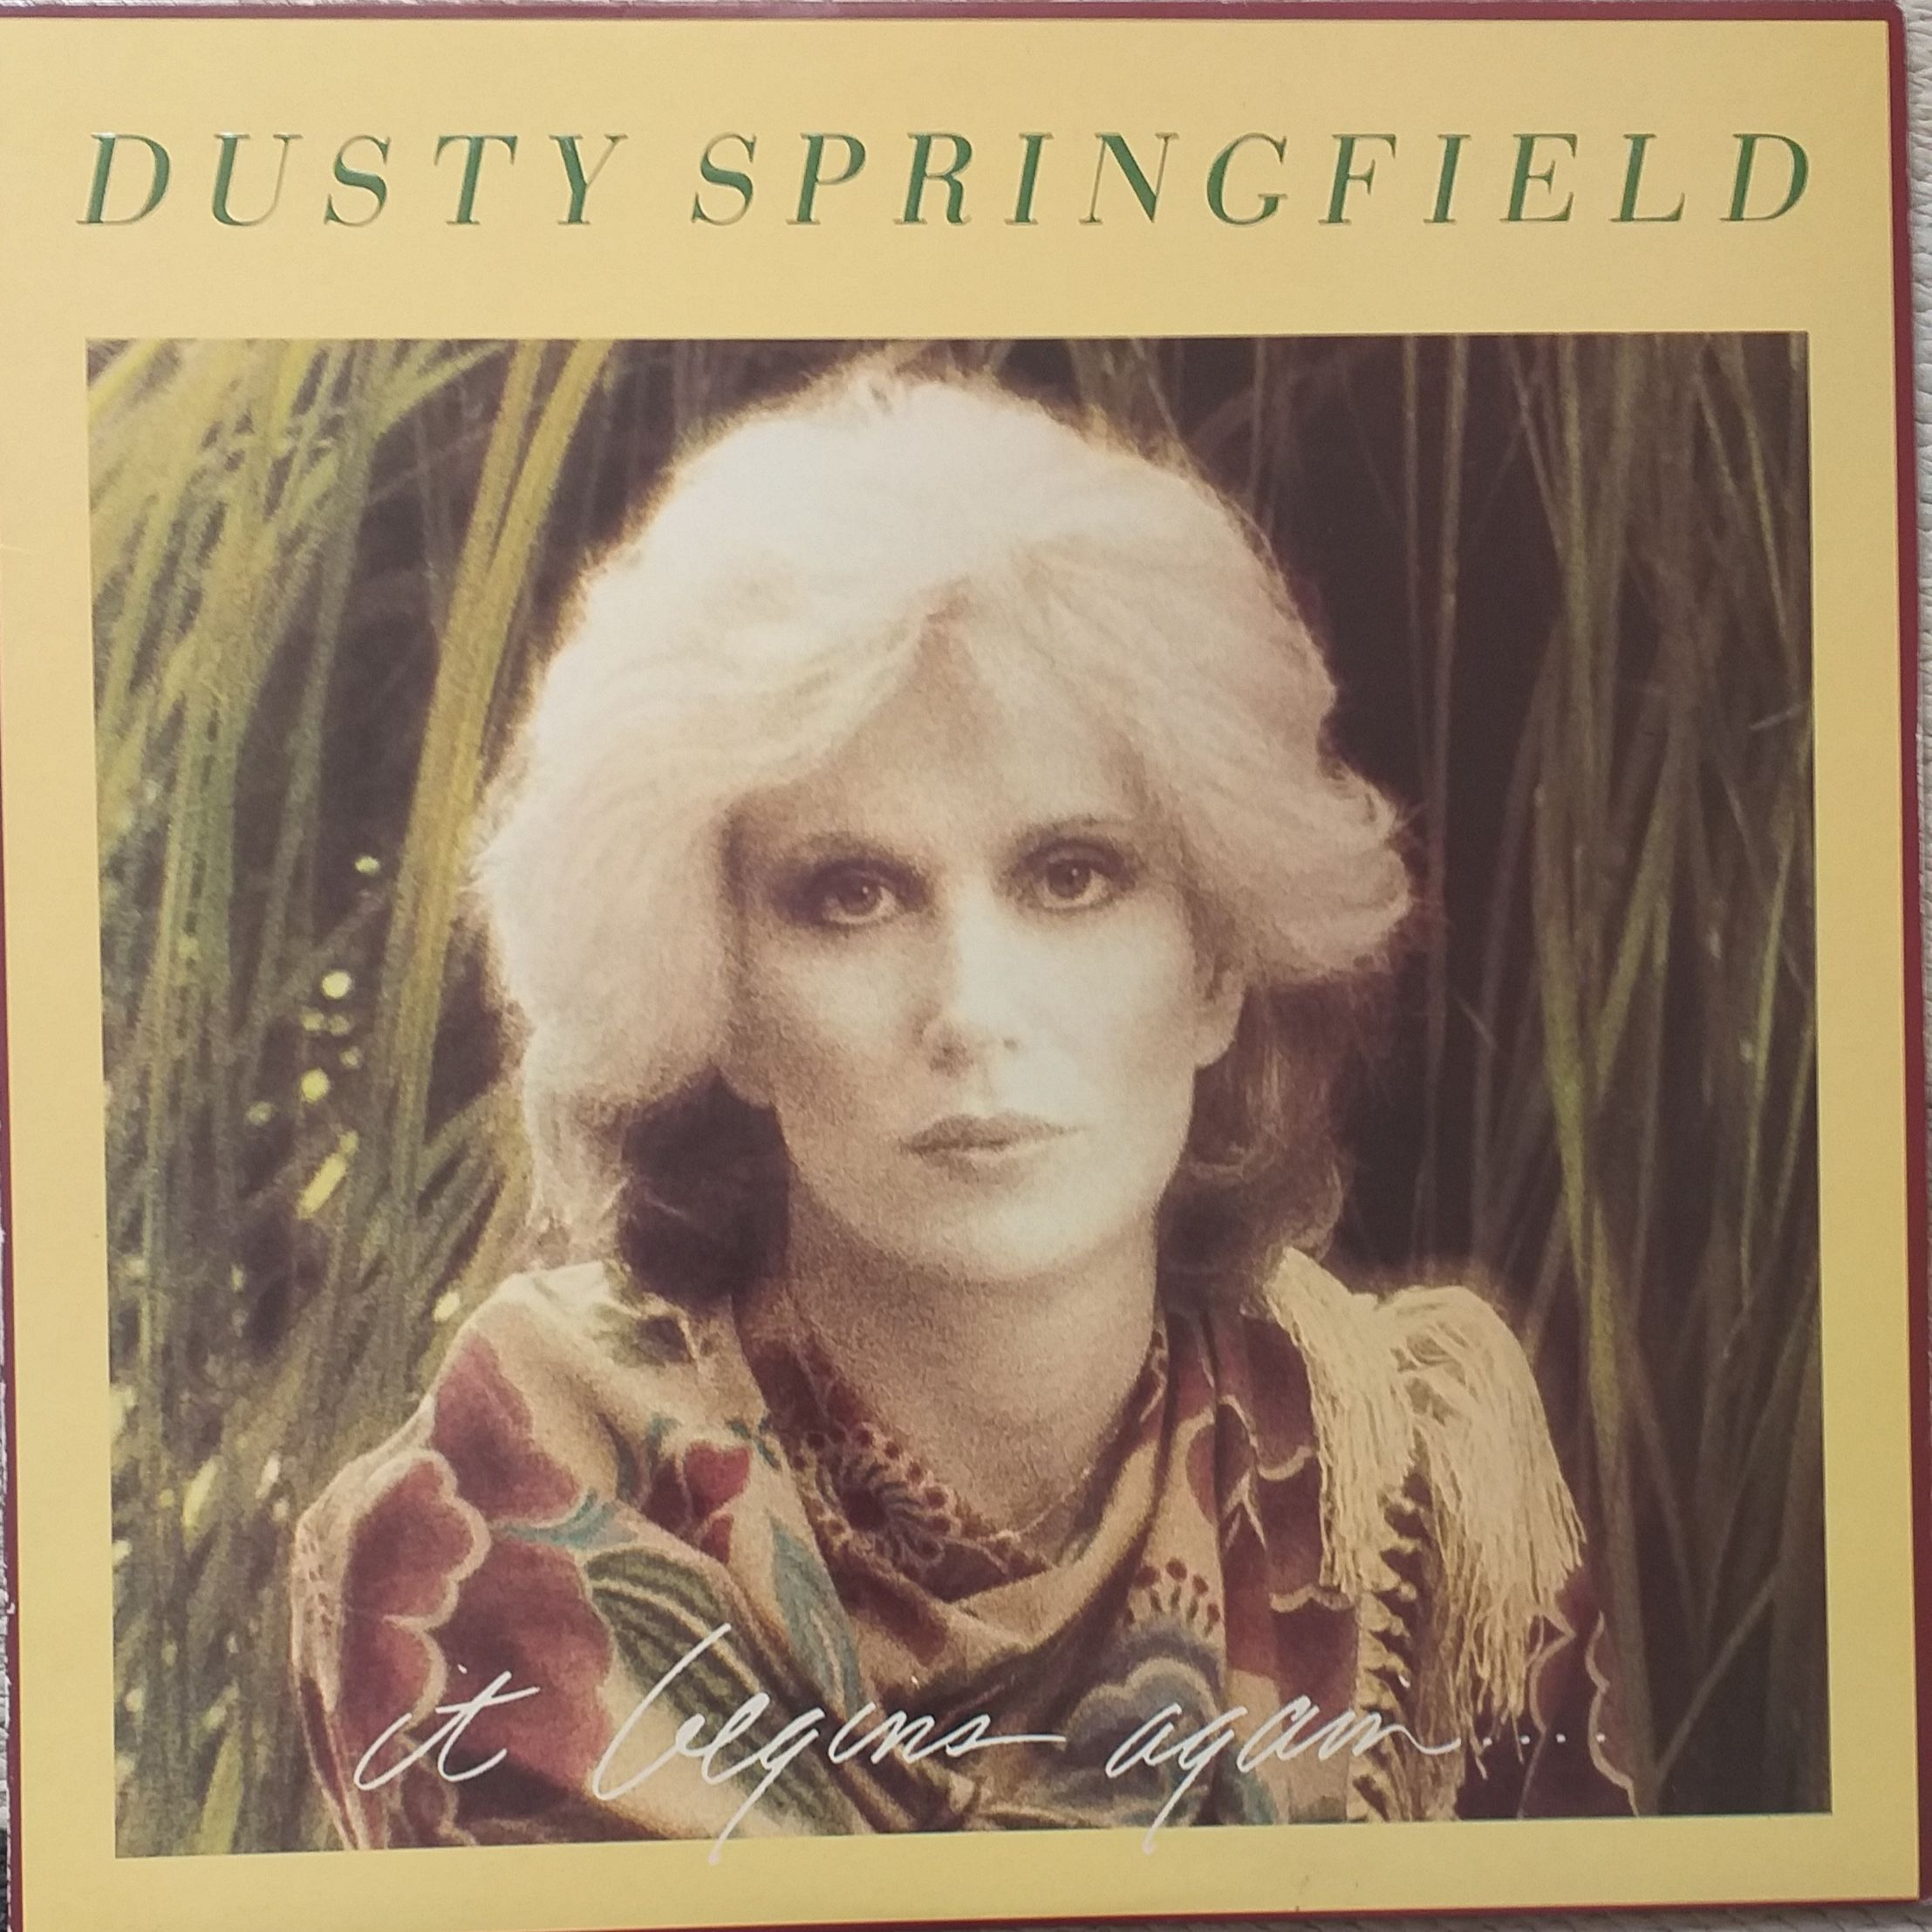 Dusty Springfield It begins again LP undefined